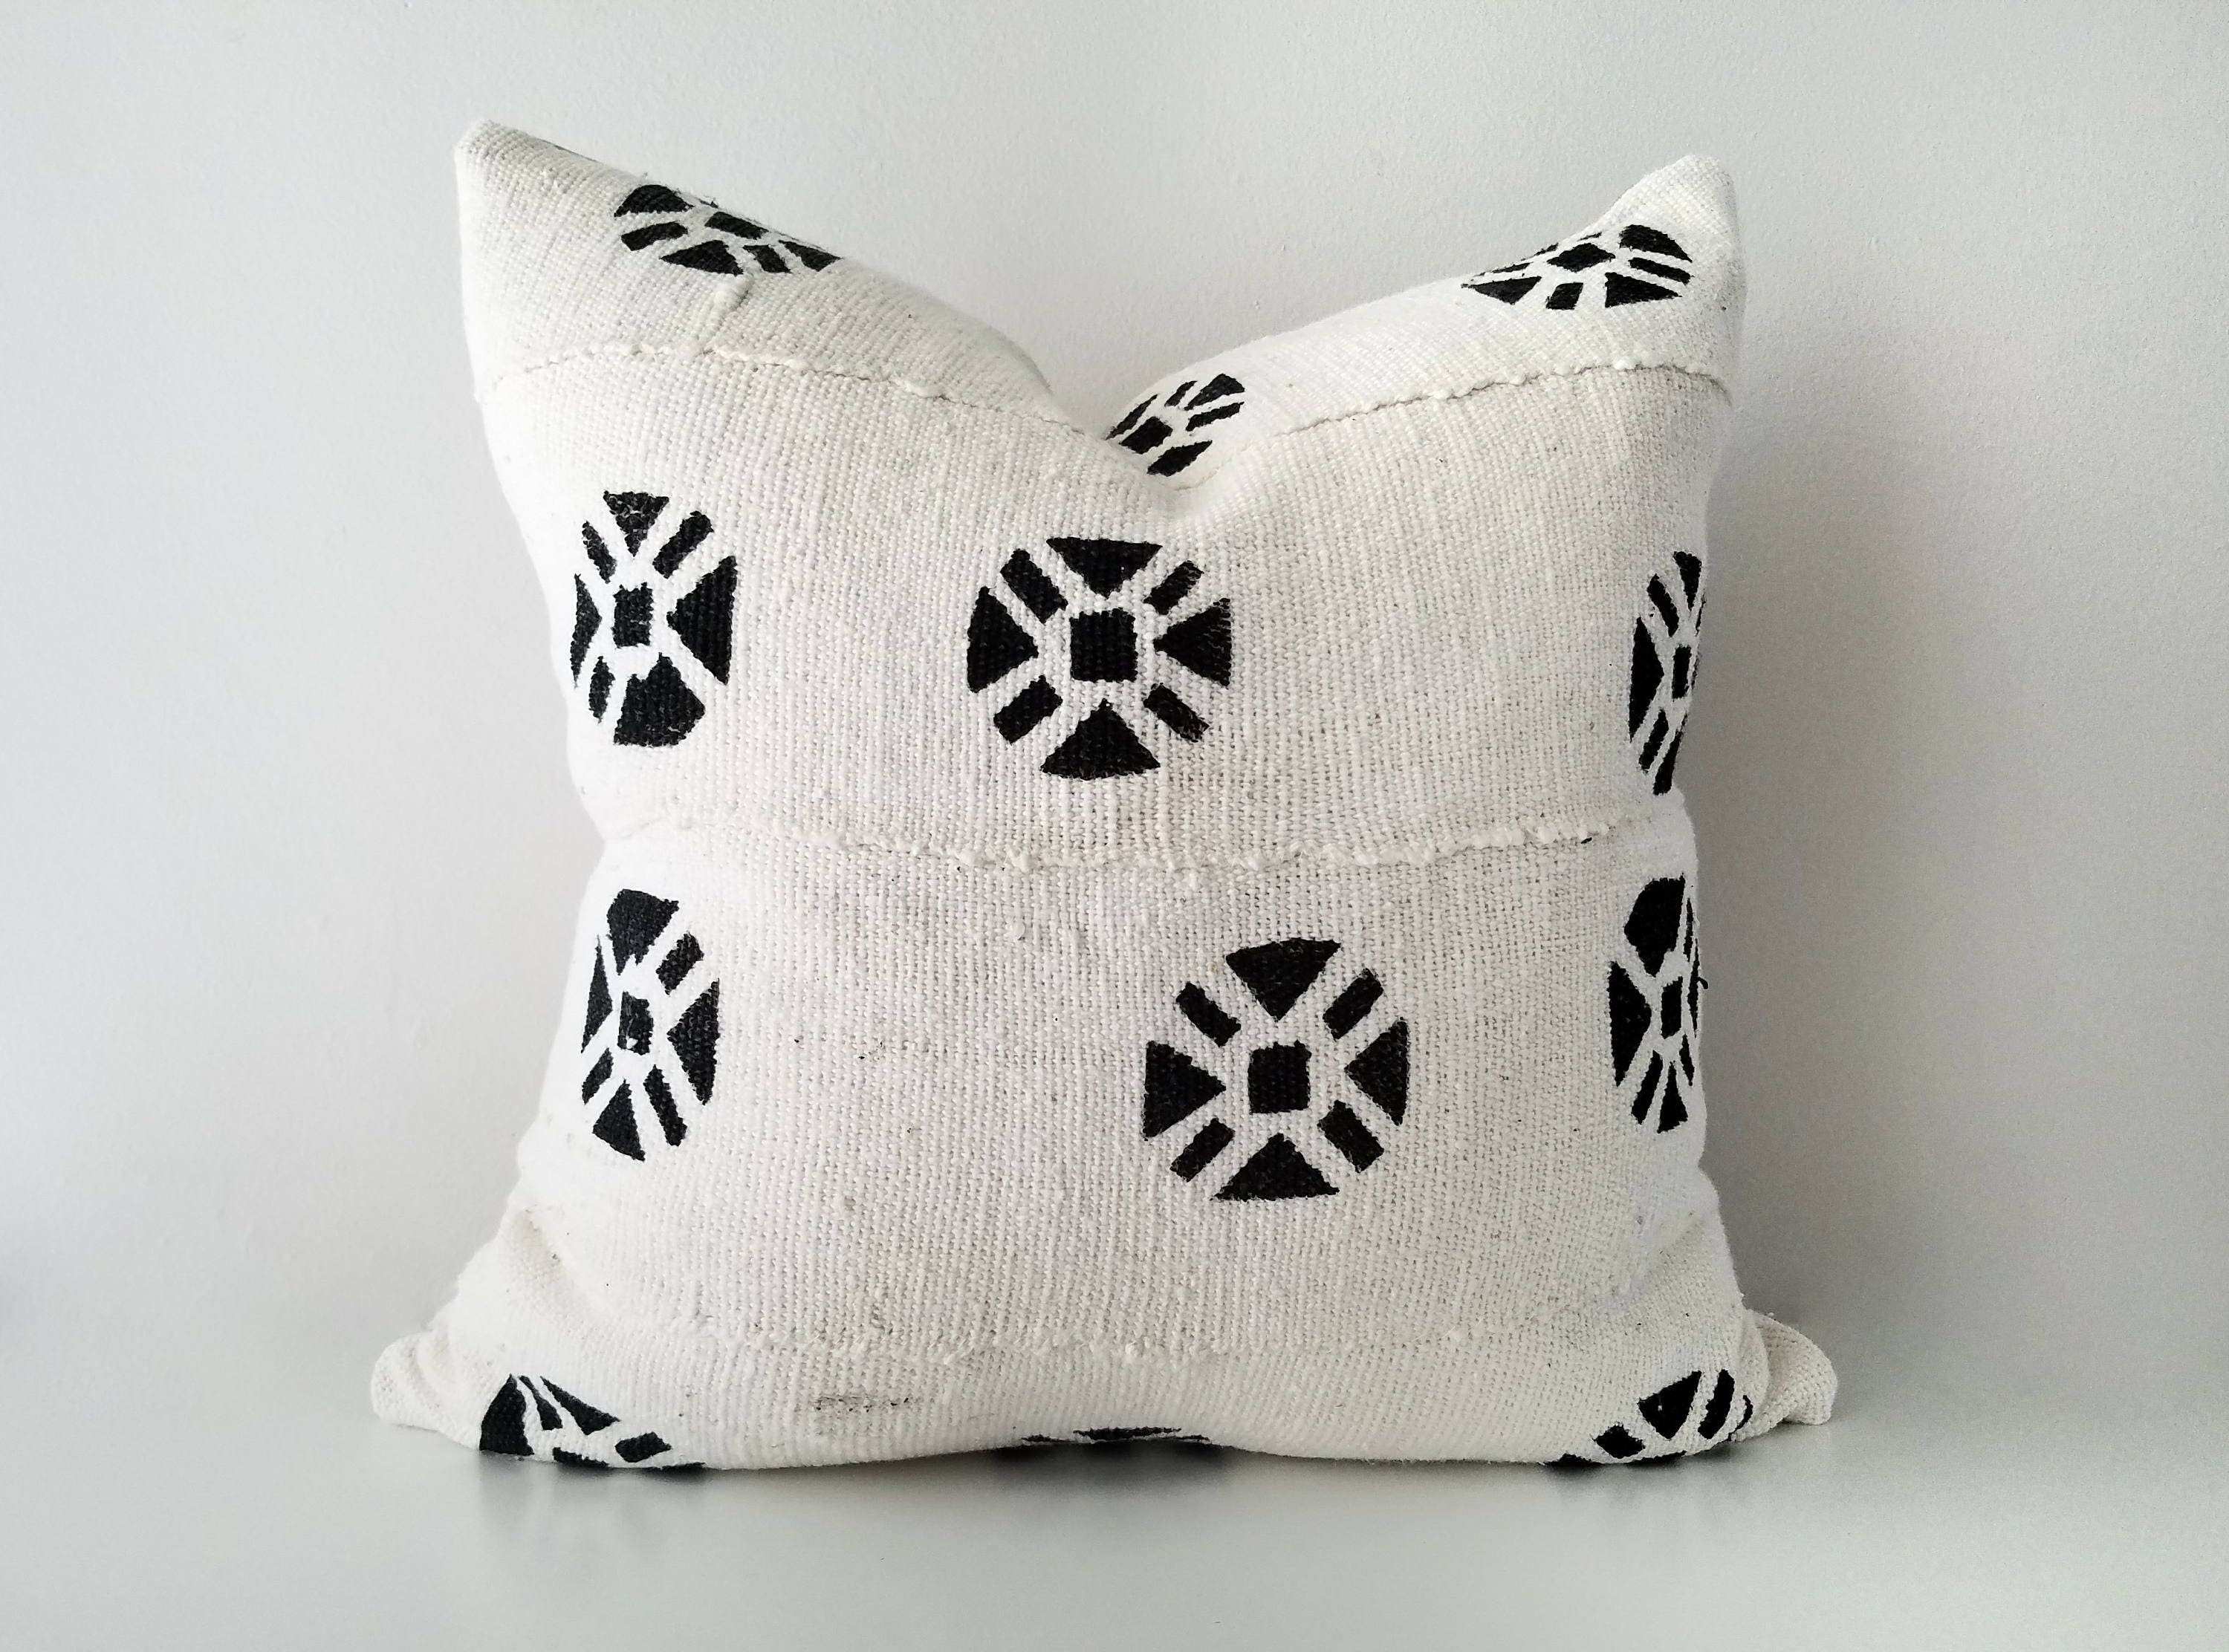 c cushion cover pty craft enterprises pillow product img design mudcloth white ltd